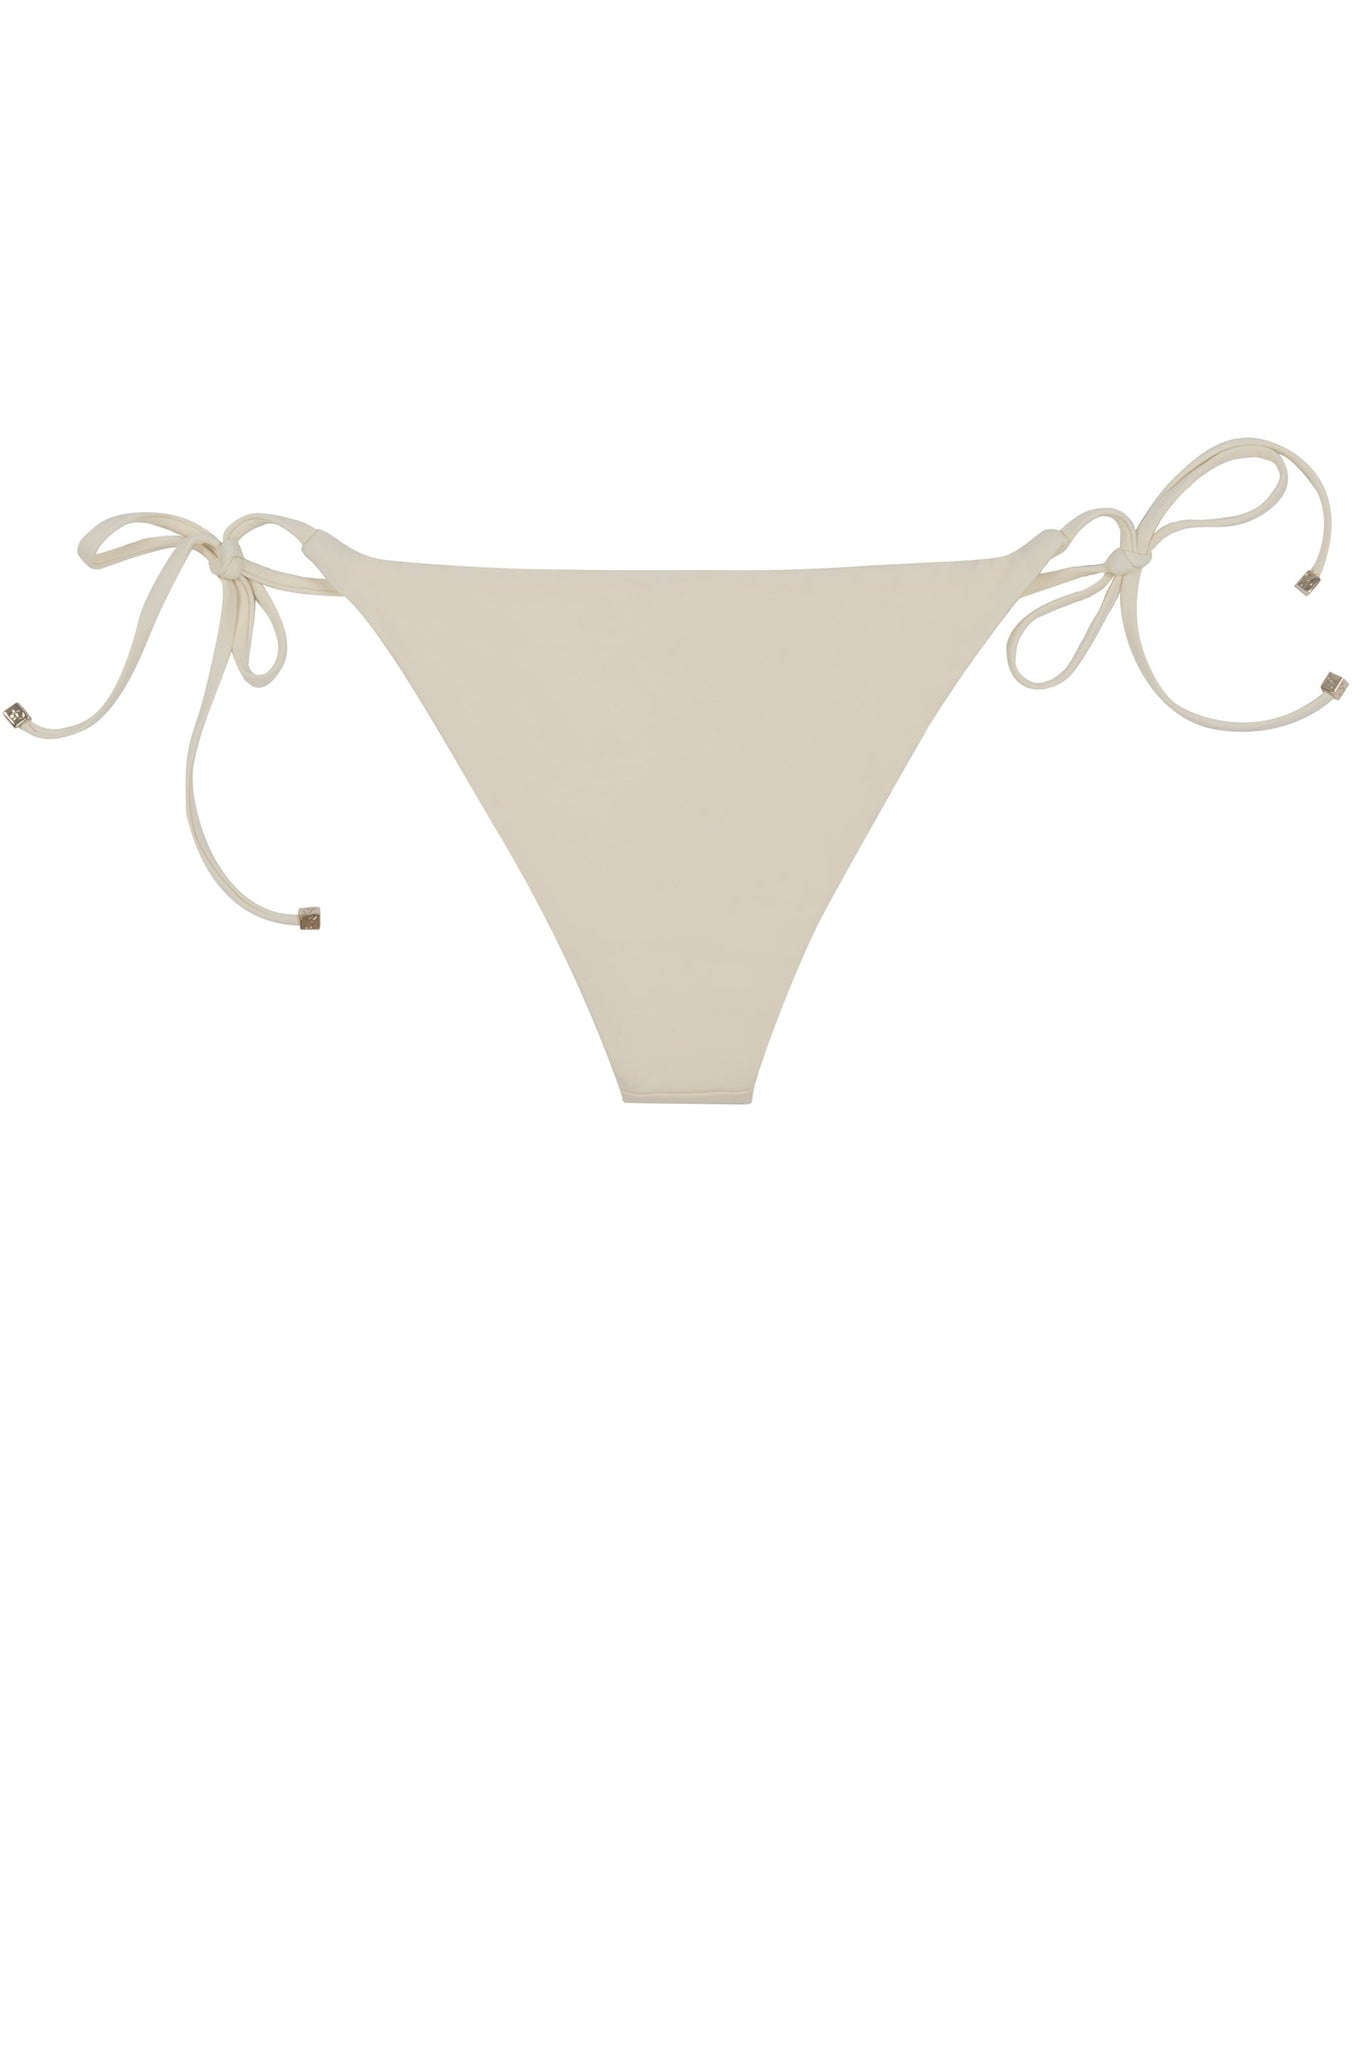 Side tie bikini bottom in cream white by Caroline af Rosenborg